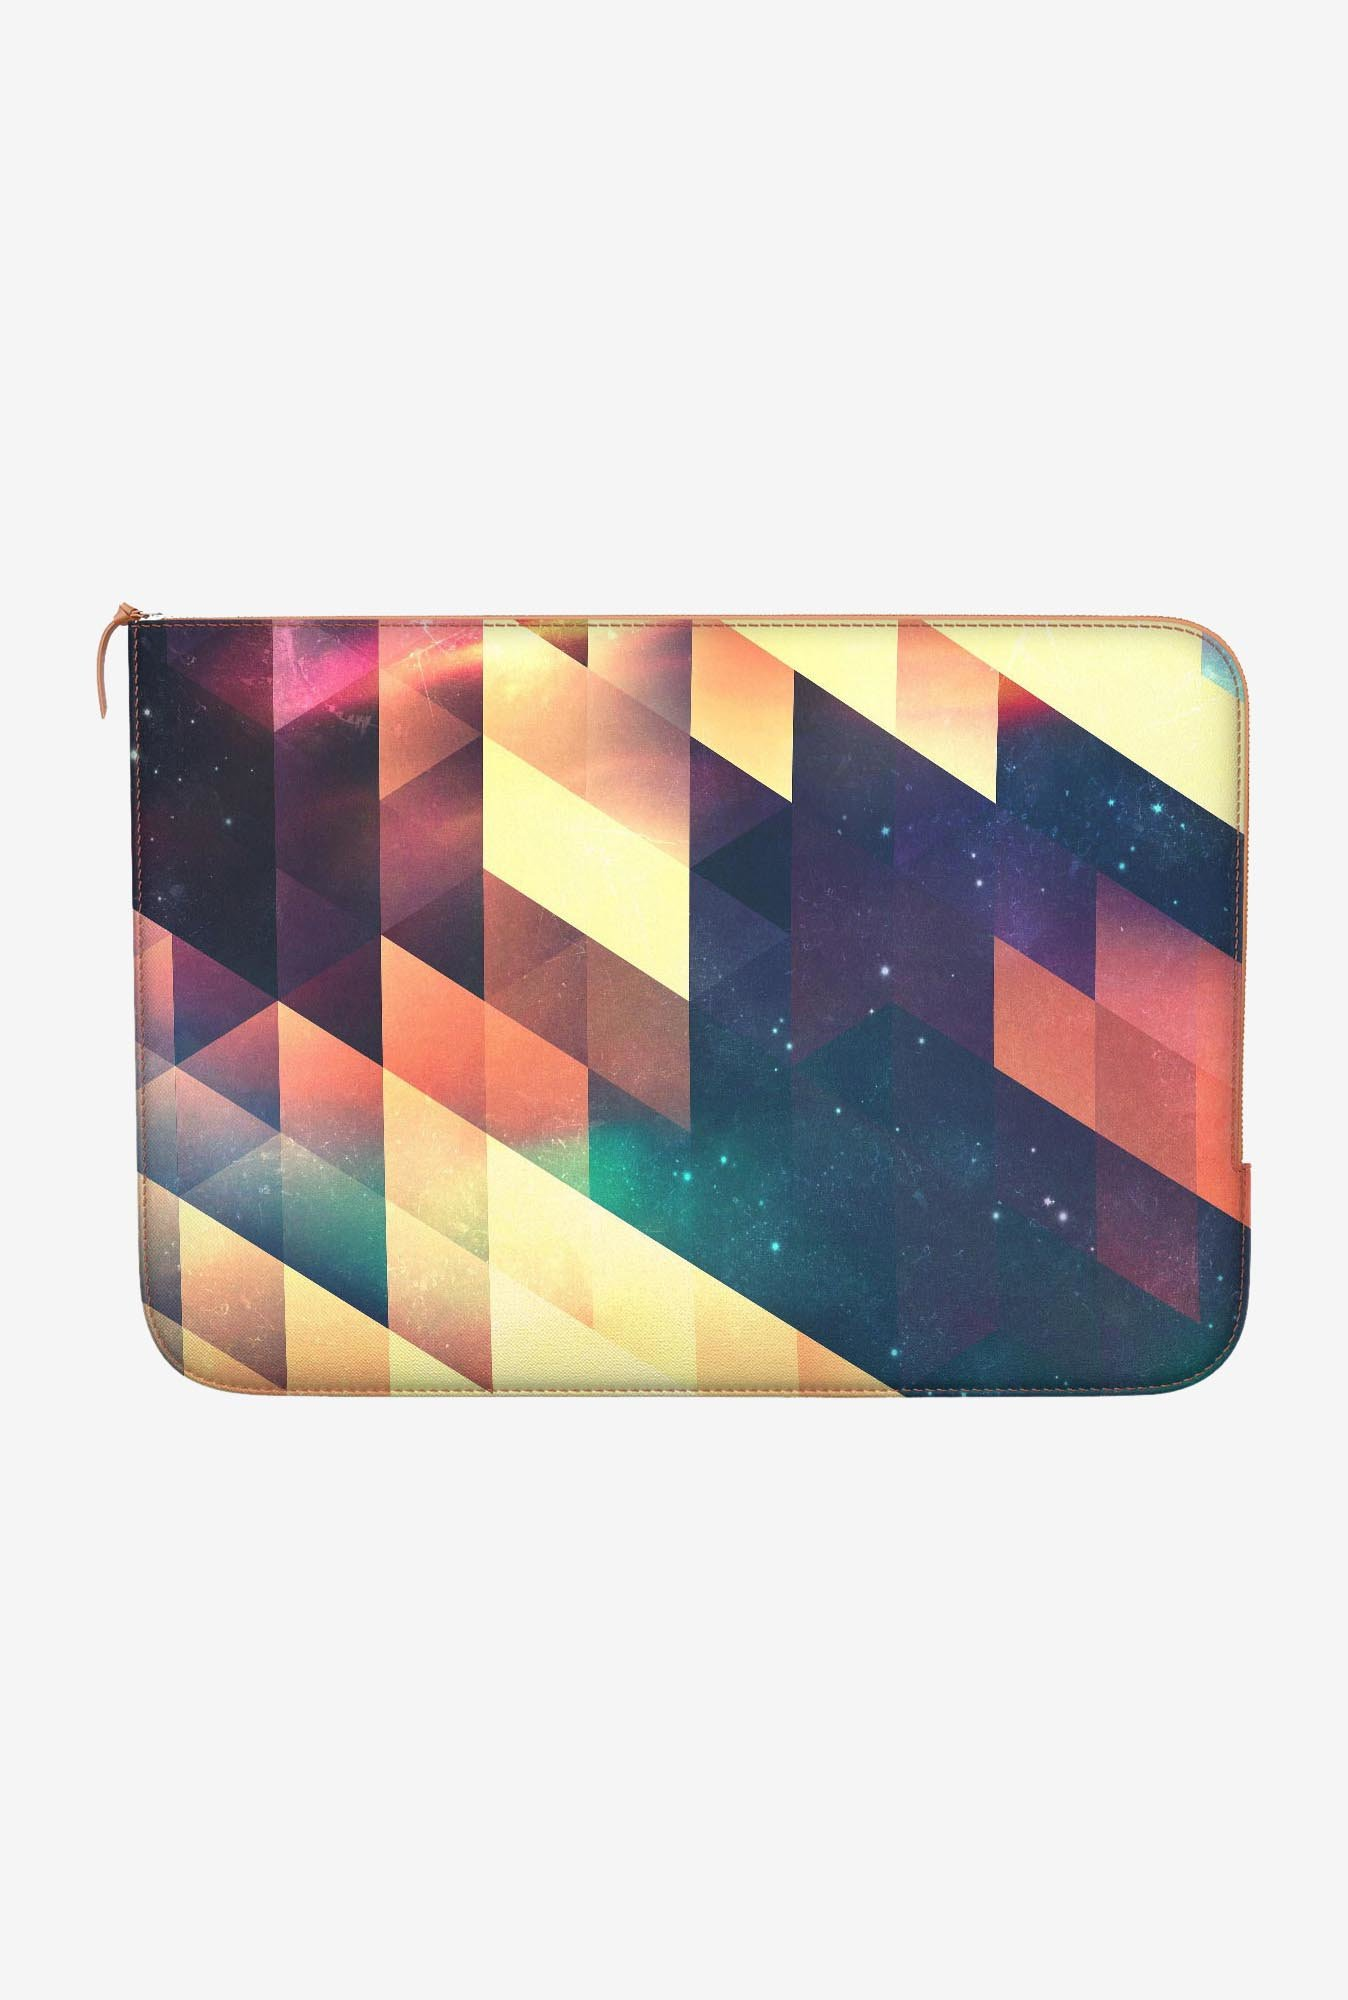 DailyObjects thyss lyyts MacBook Pro 15 Zippered Sleeve